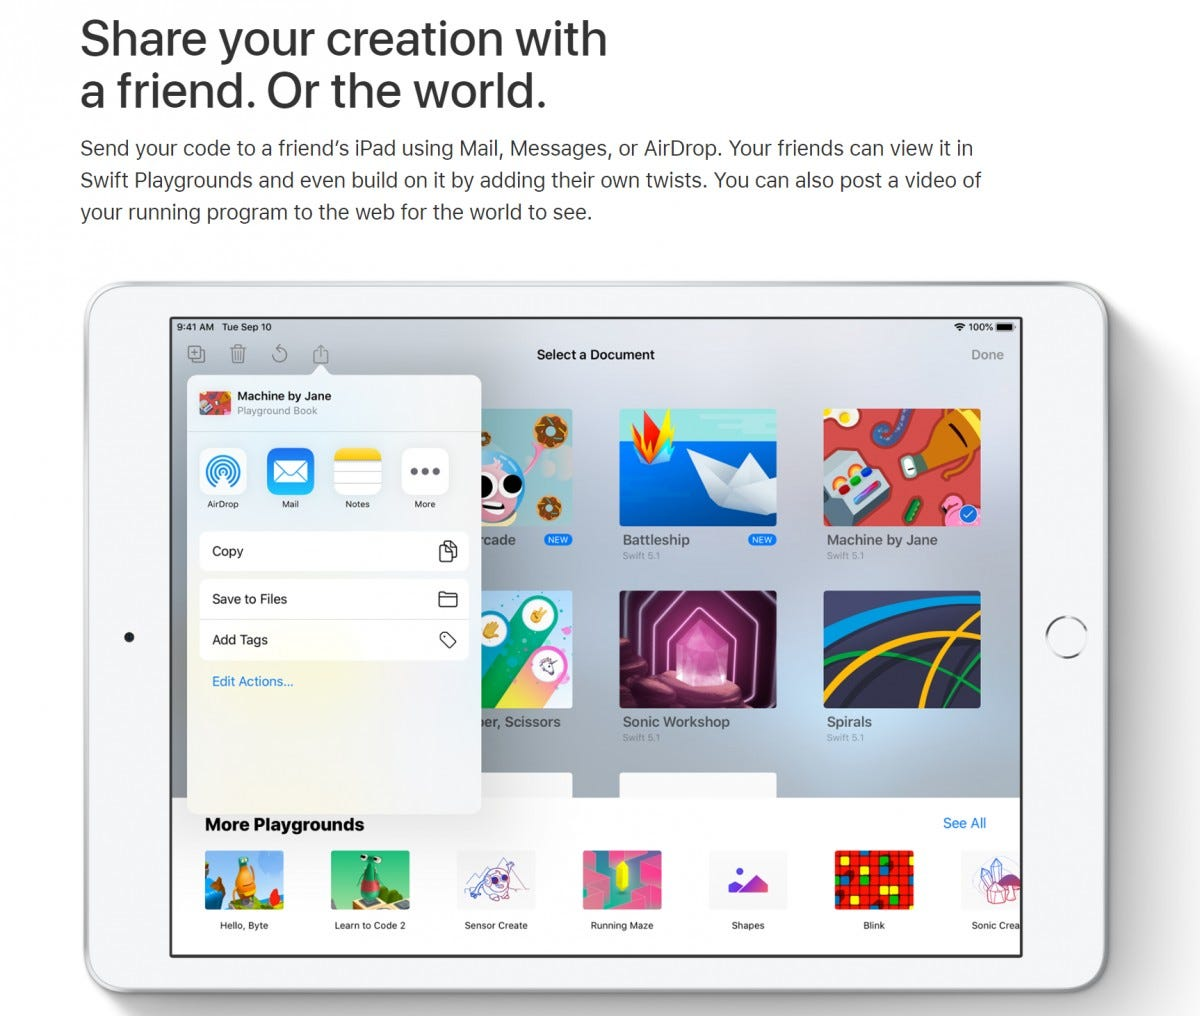 Swift Playgrounds App